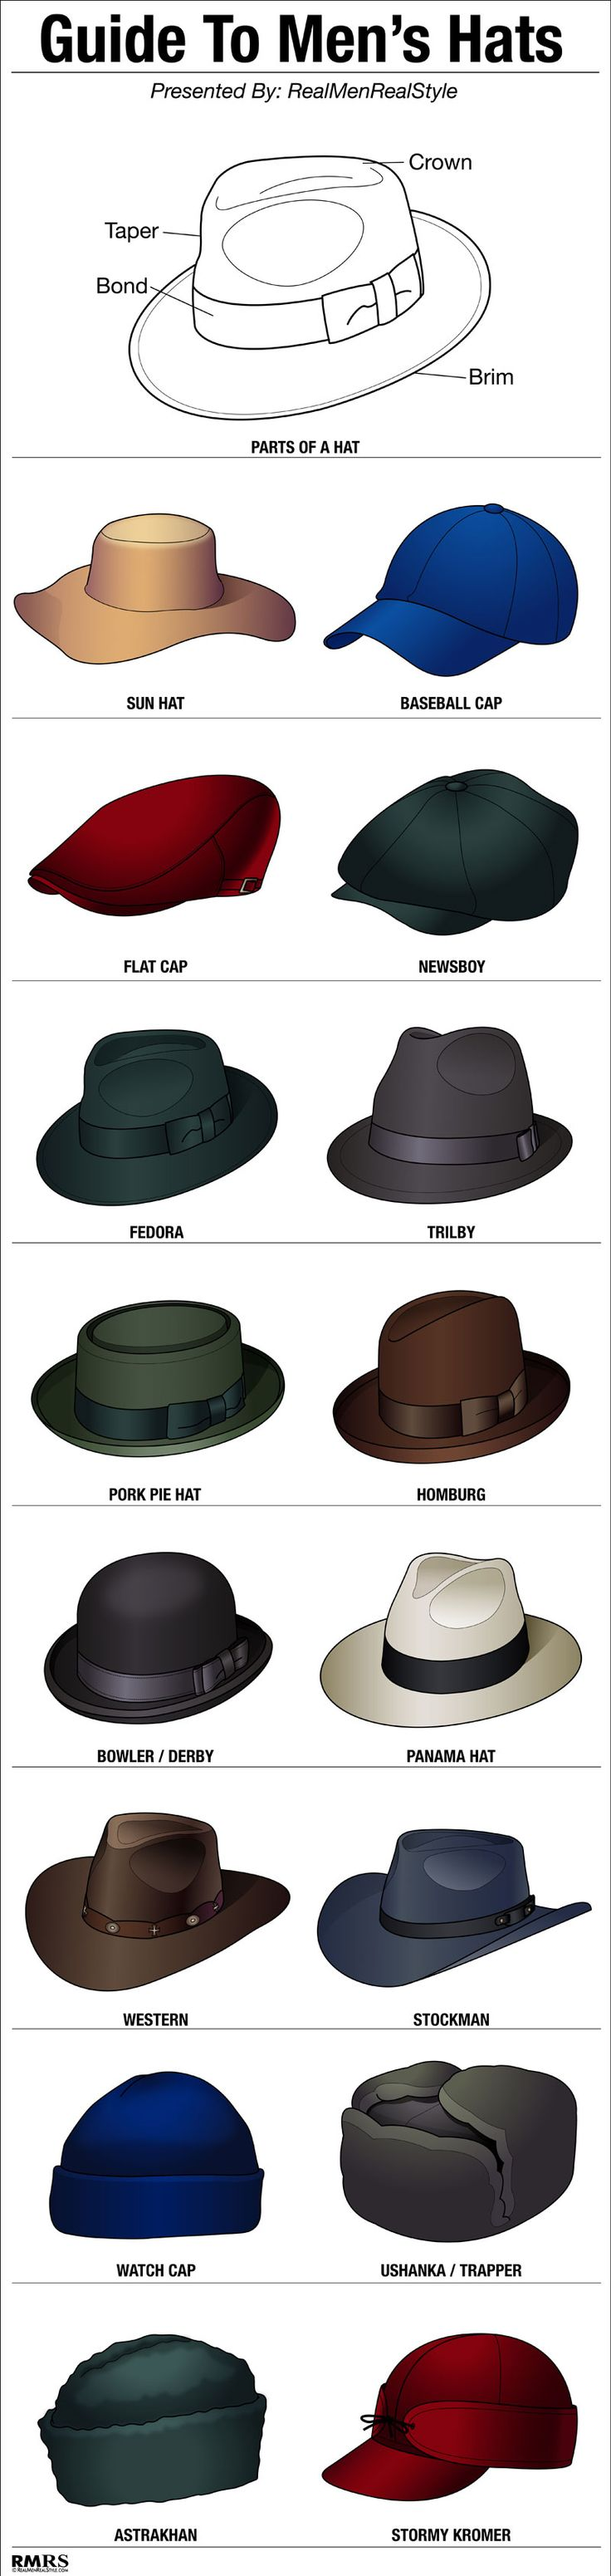 Real Men/Real Style Guide to Men's Hats